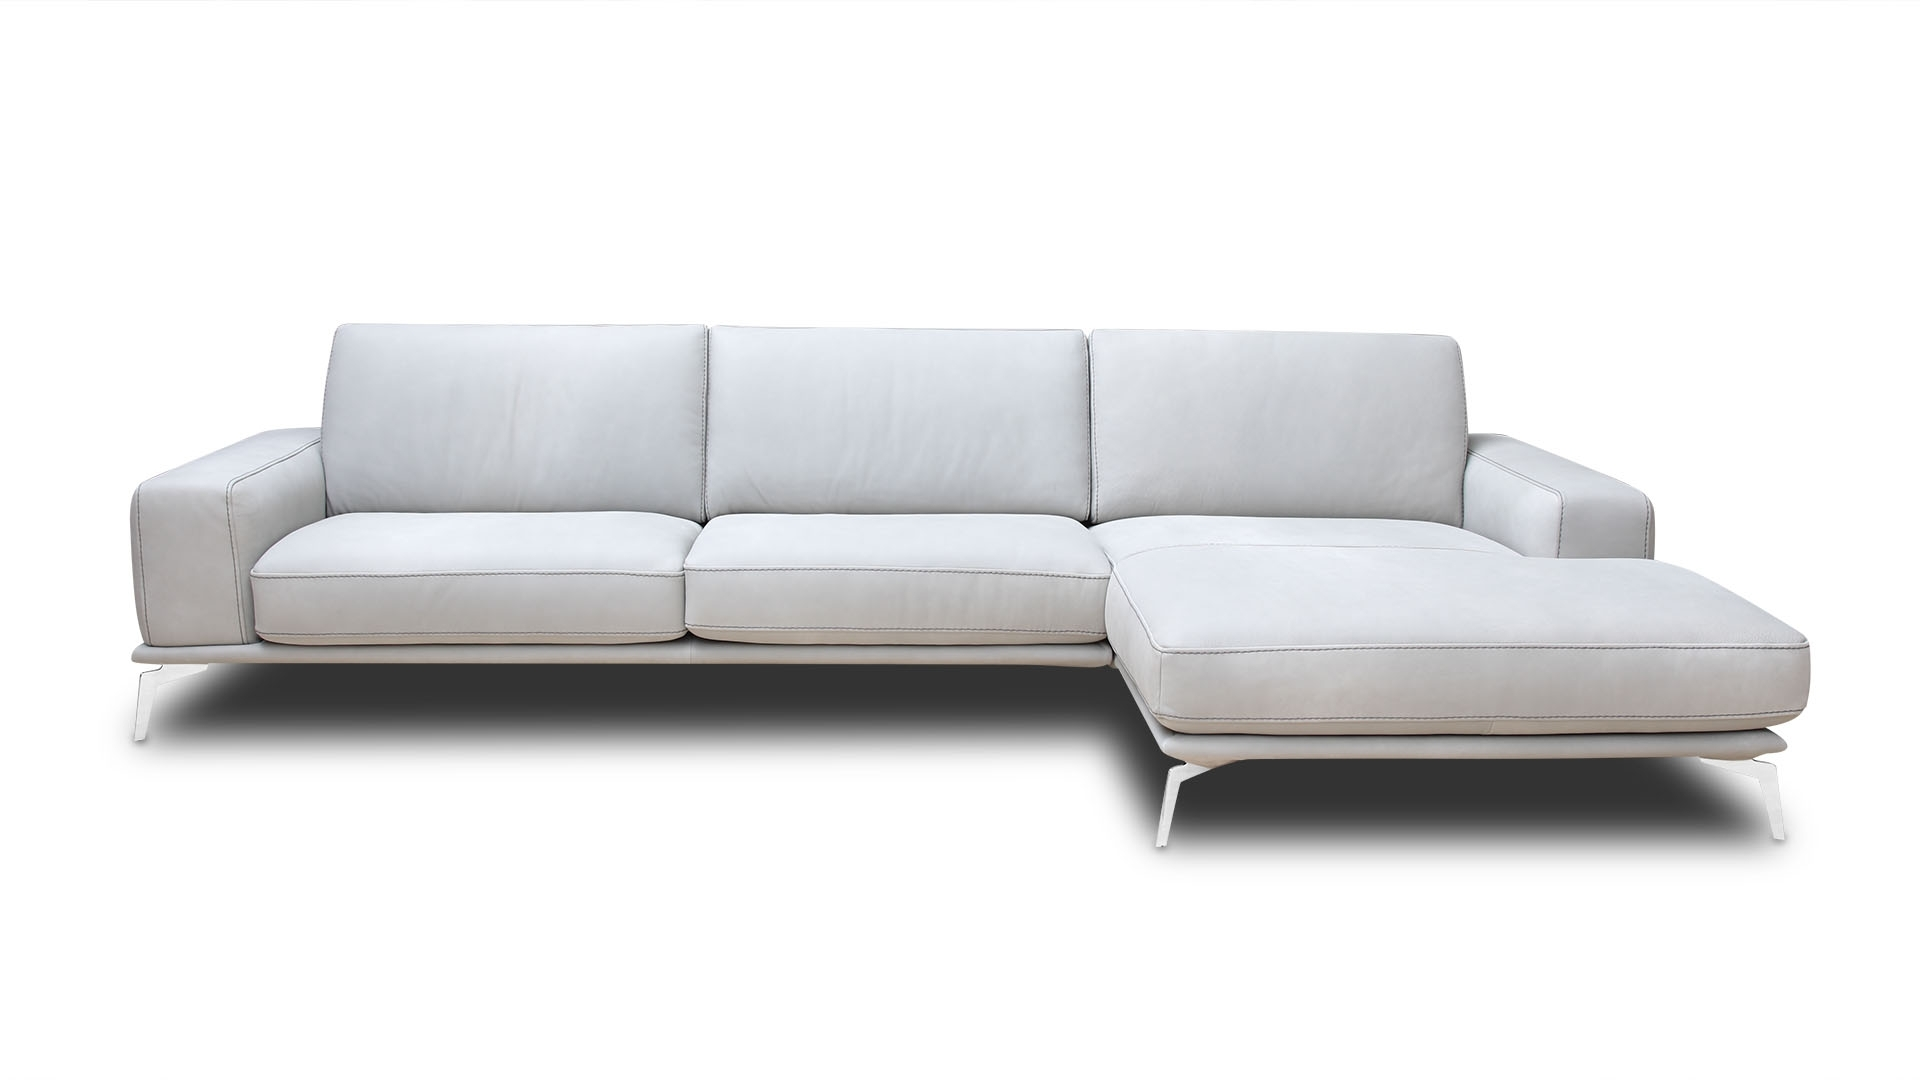 Sofas & Sectionals – Braccisofas With Glamour Ii 3 Piece Sectionals (View 8 of 25)